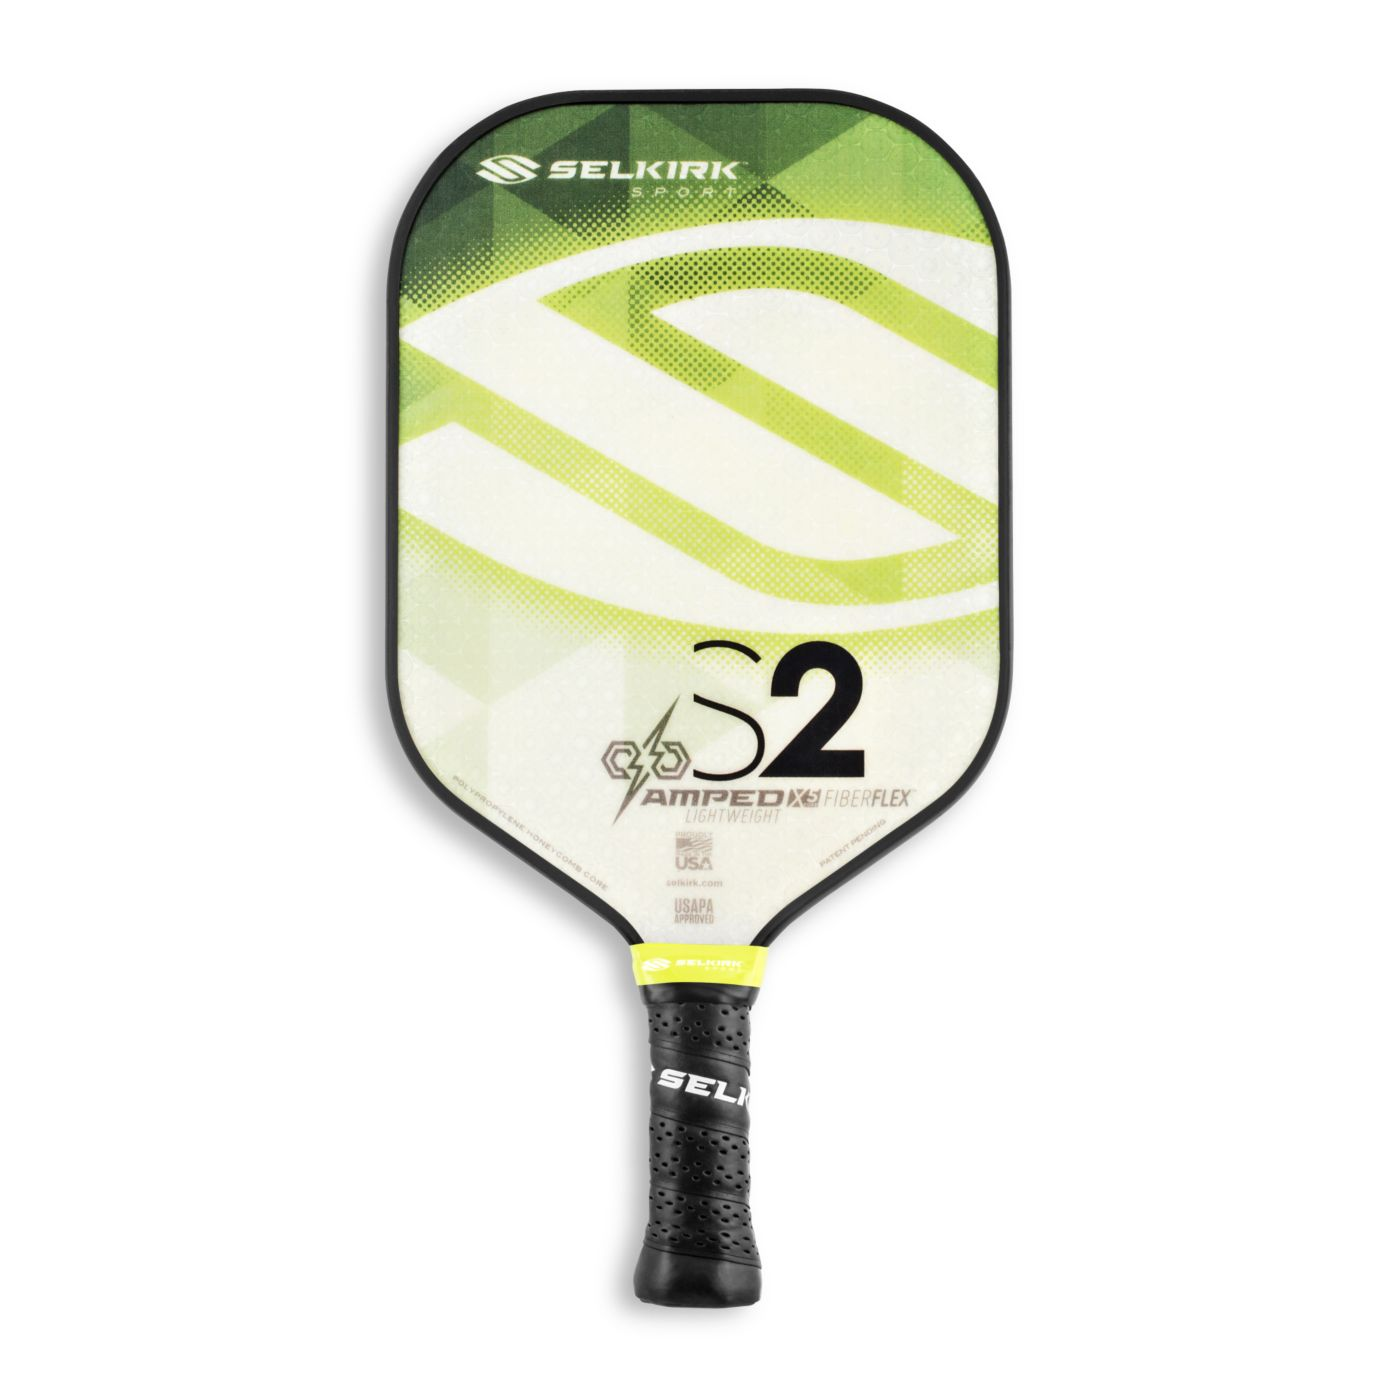 Sellkirk Amped S2 Lightweight Pickleball Paddle